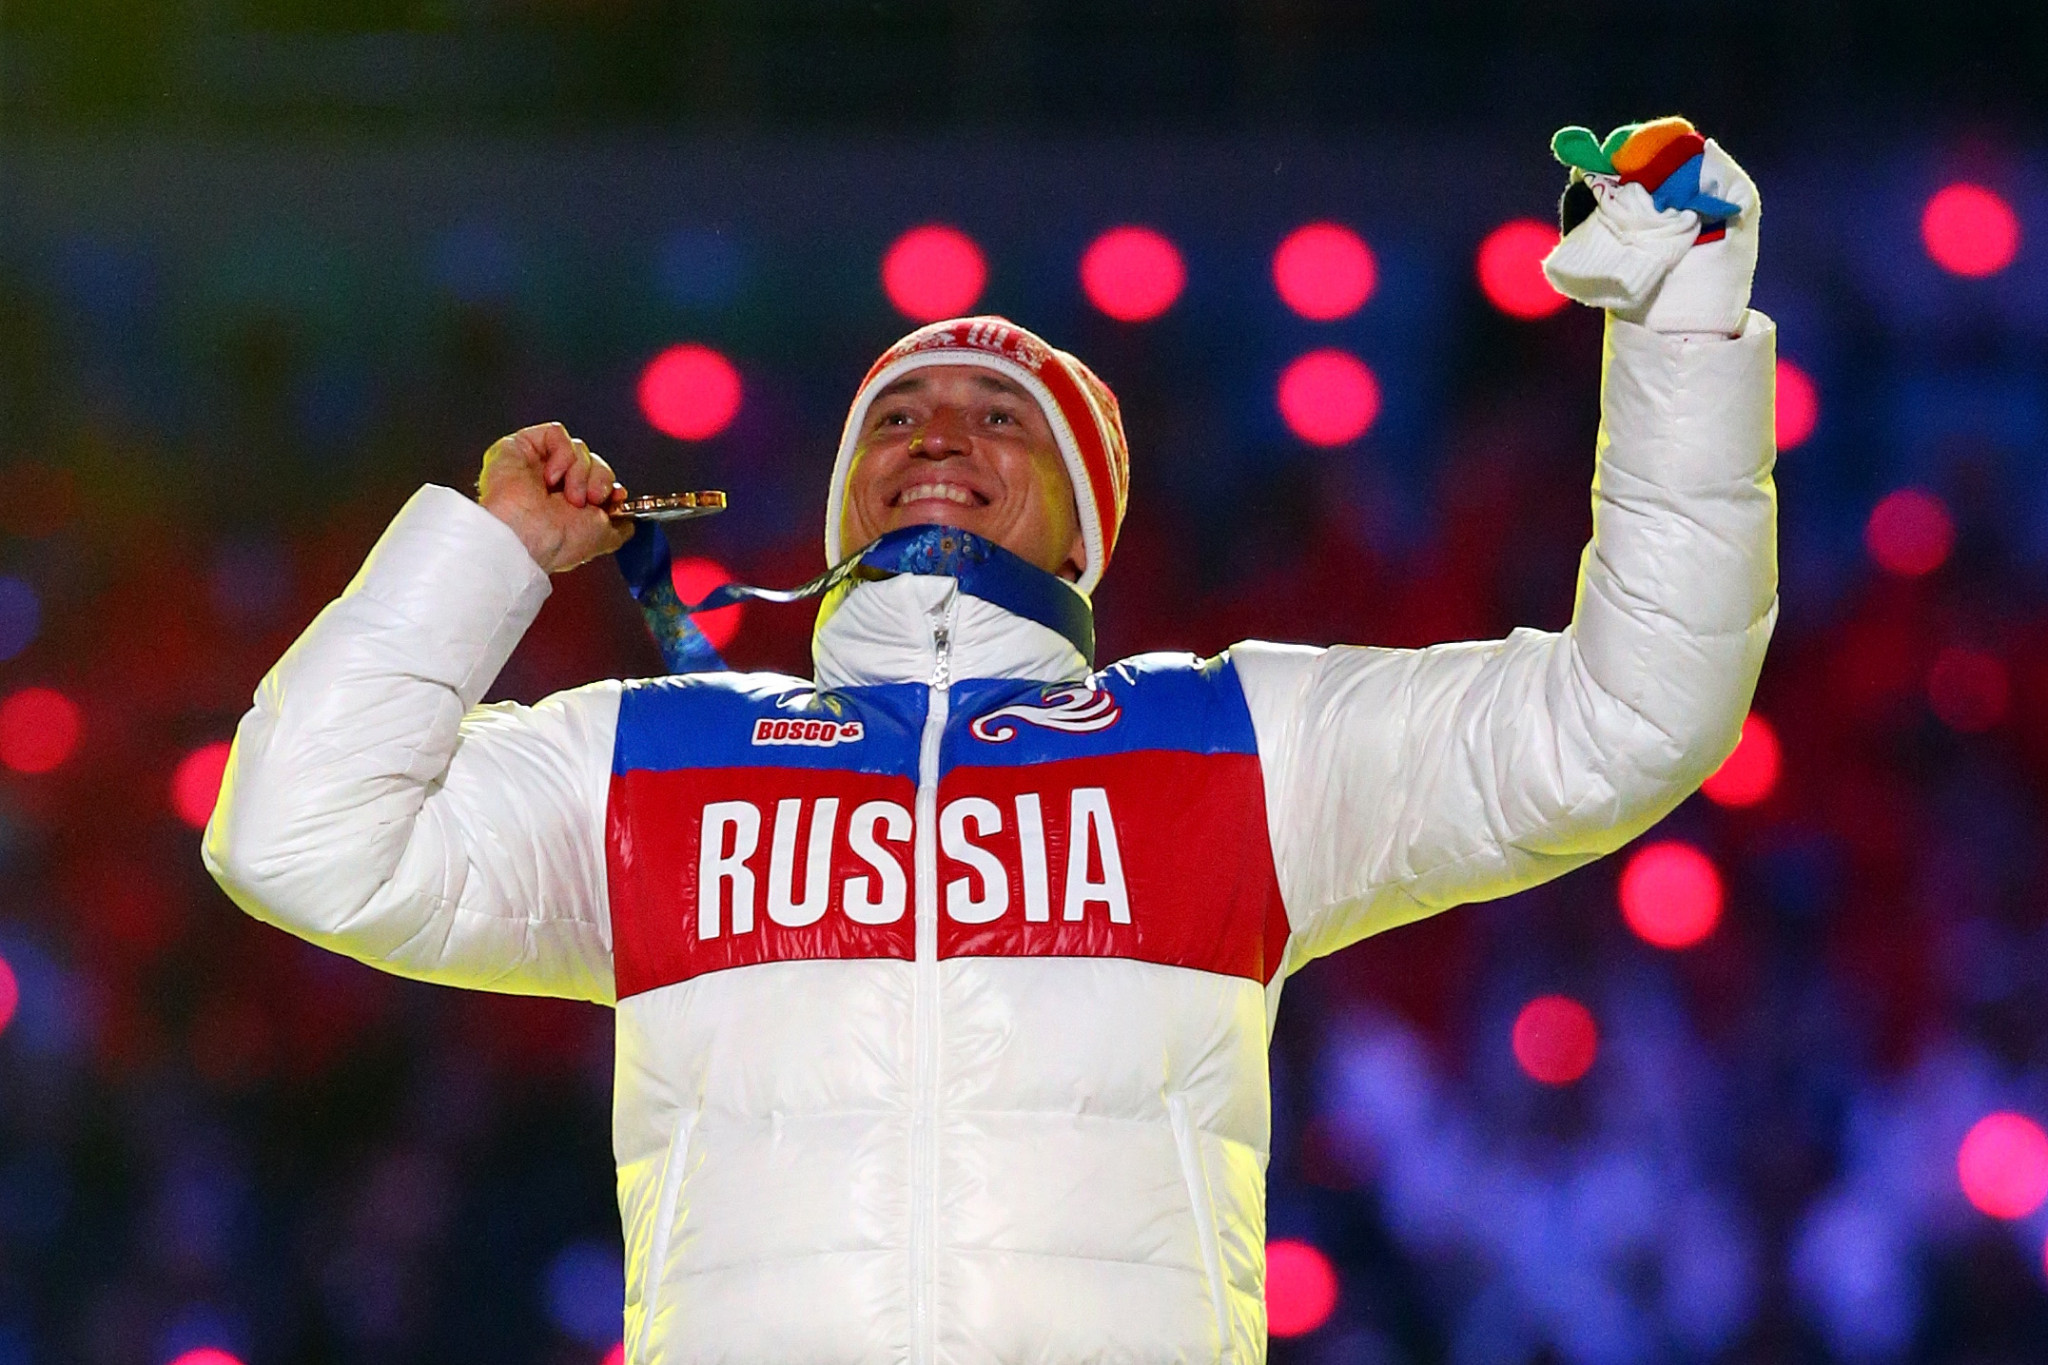 Alexander Legkov's two Sochi 2014 medals were ultimately reinstated by the Court of Arbitration for Sport ©Getty Images